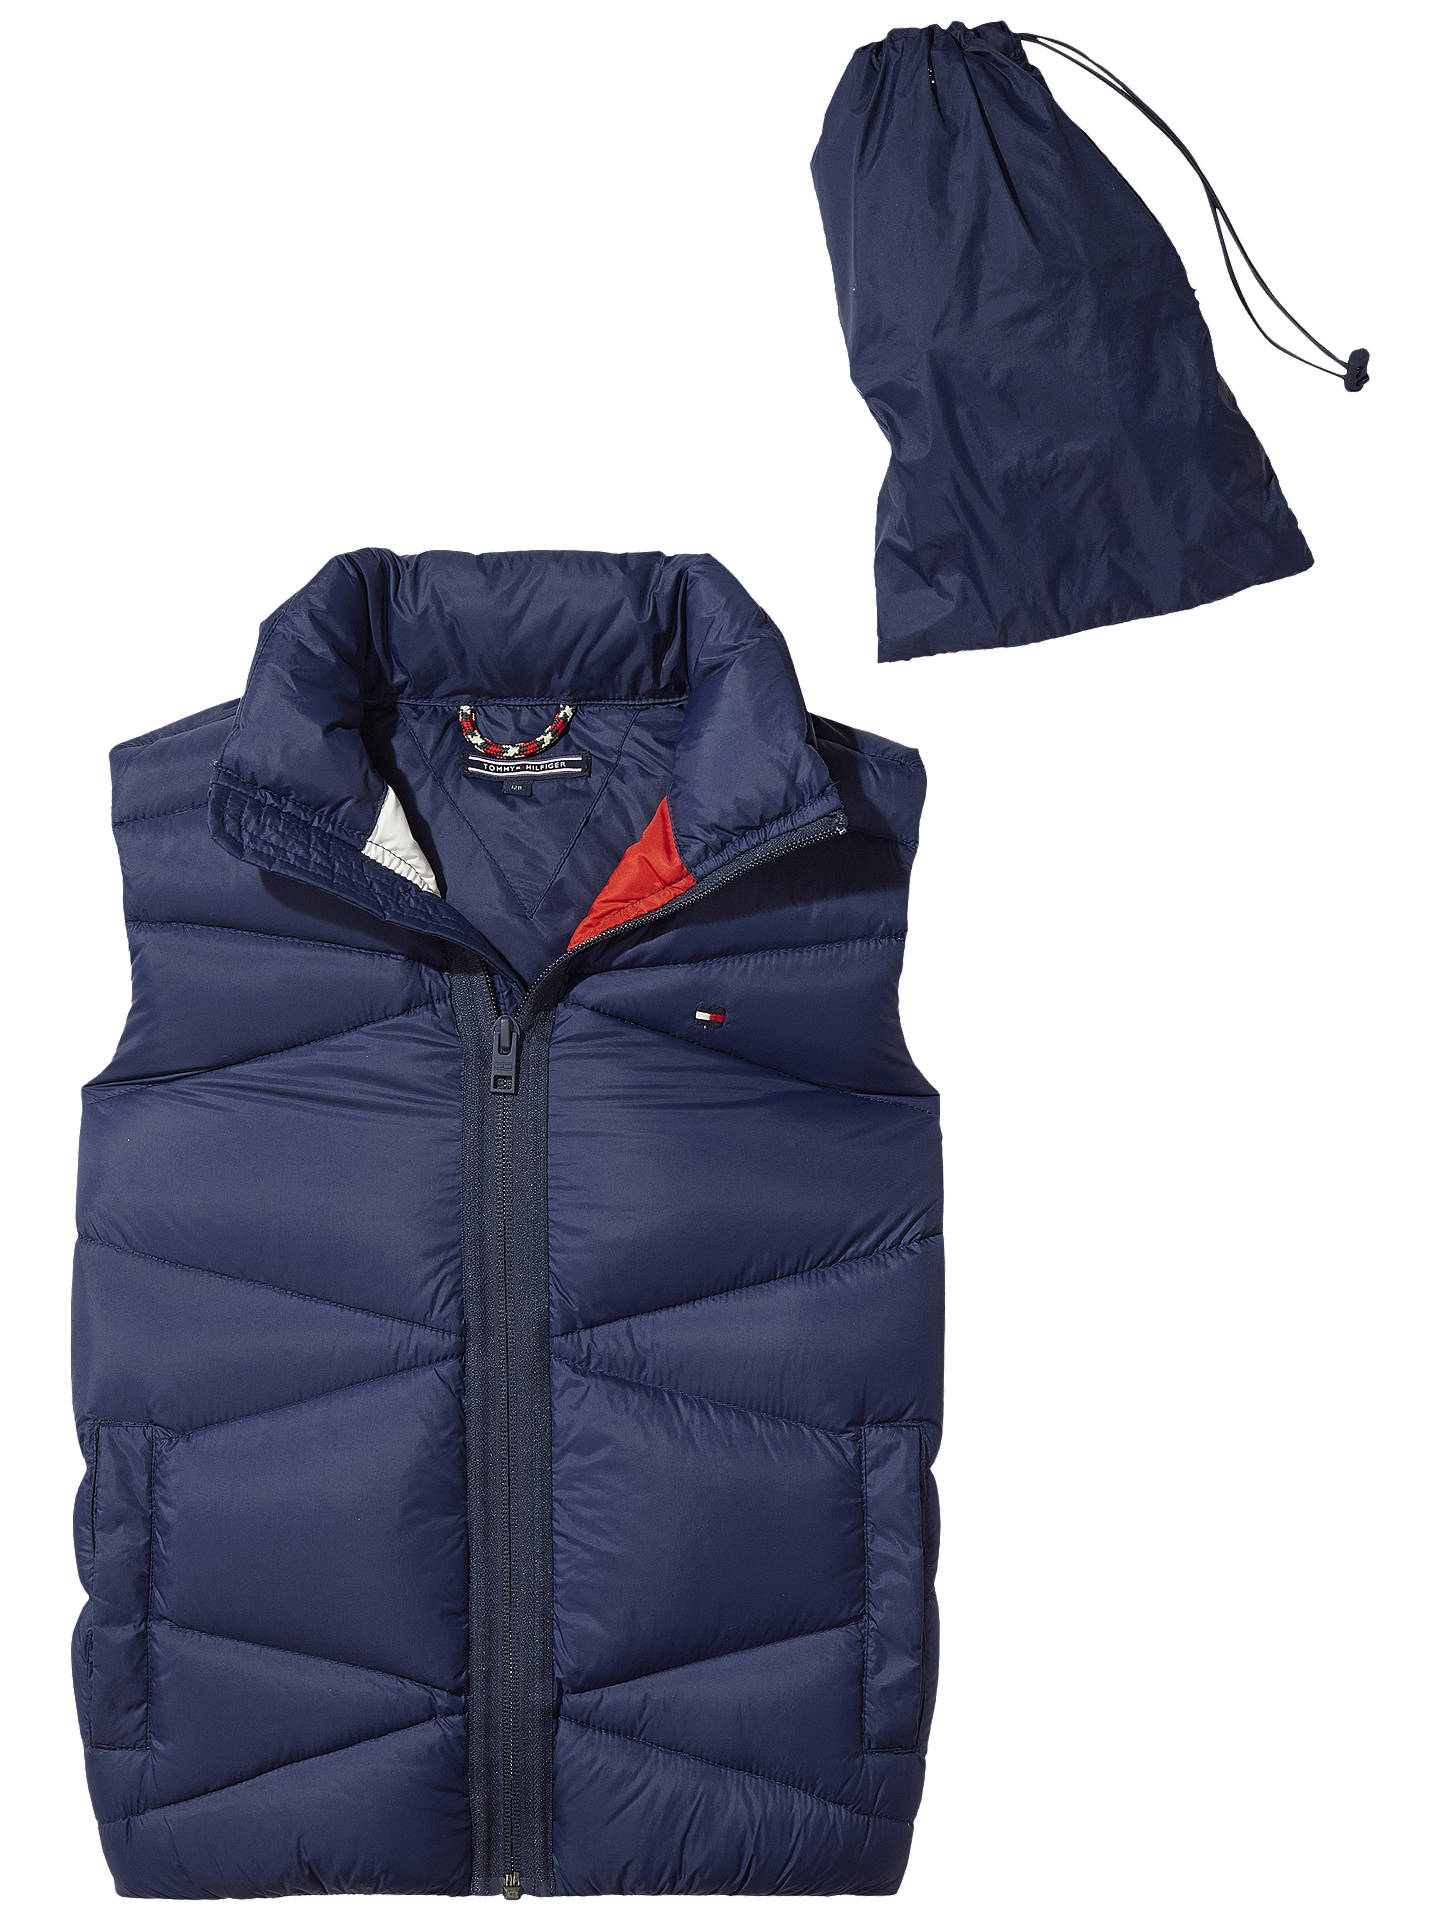 BuyTommy Hilfiger Boys  Pack Away Gilet, Navy, 7 years Online at johnlewis. 25d1f558eb